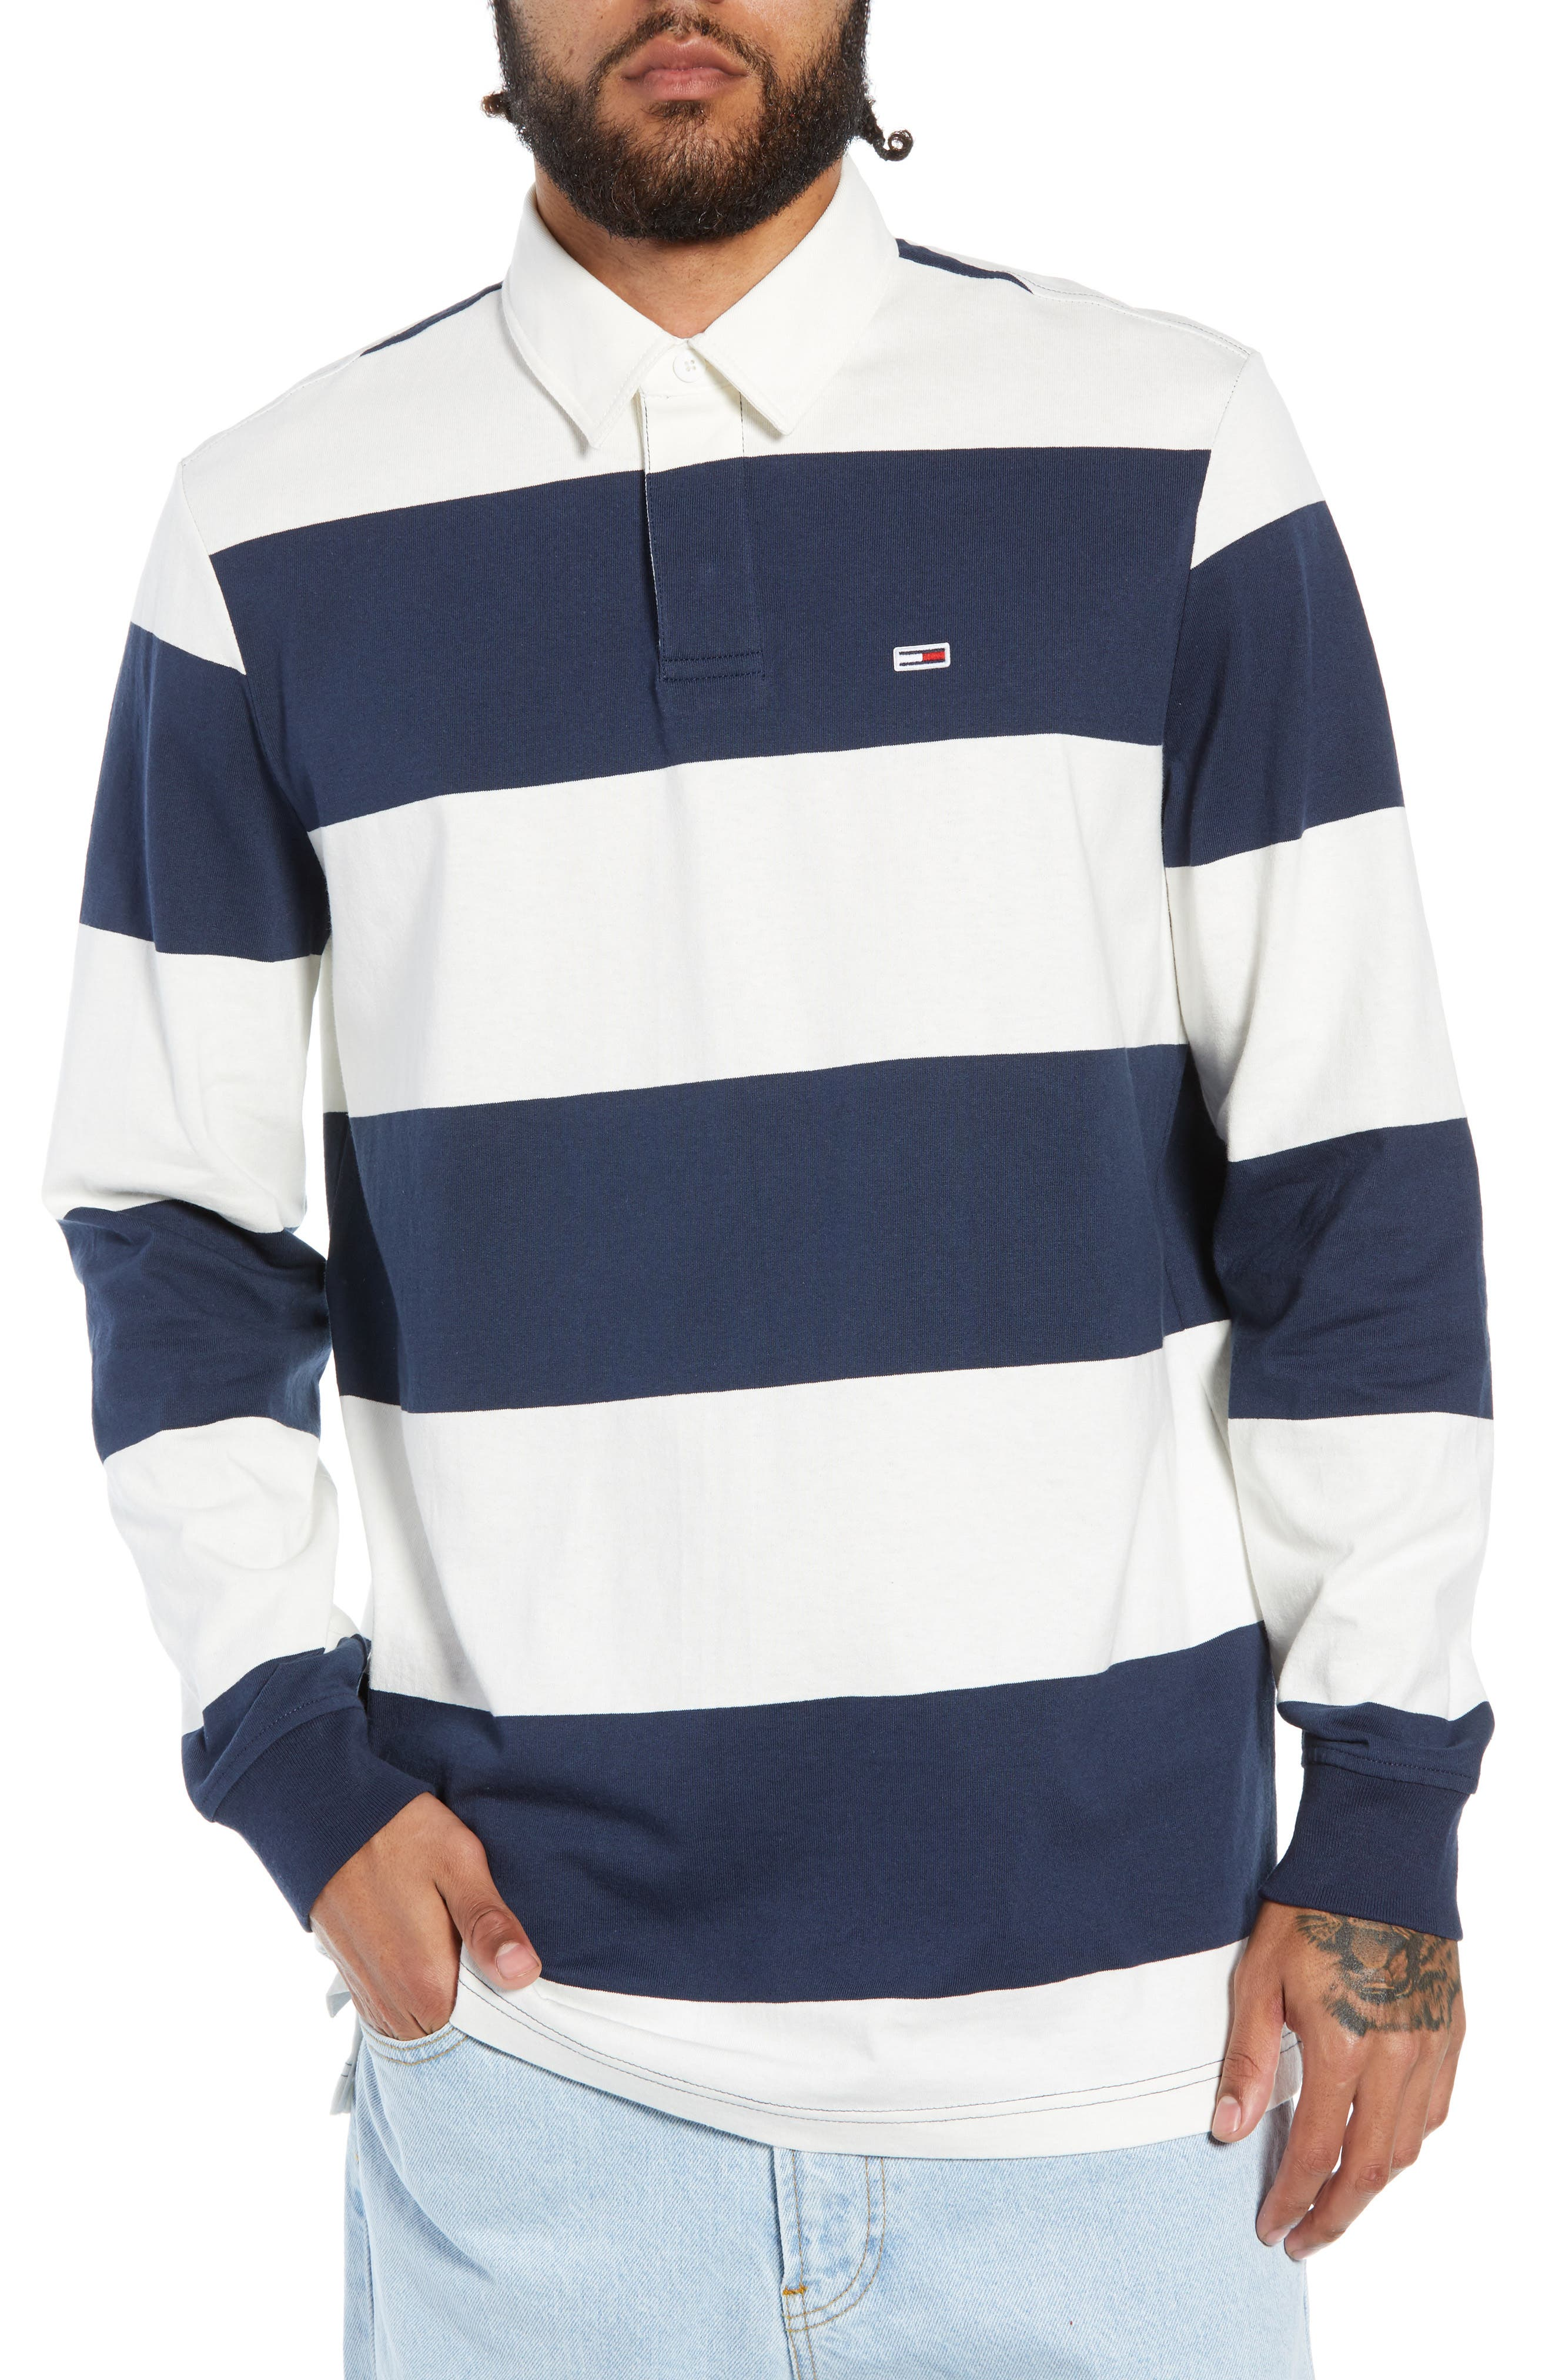 TJM Tommy Classics Rugby Shirt,                             Main thumbnail 1, color,                             100